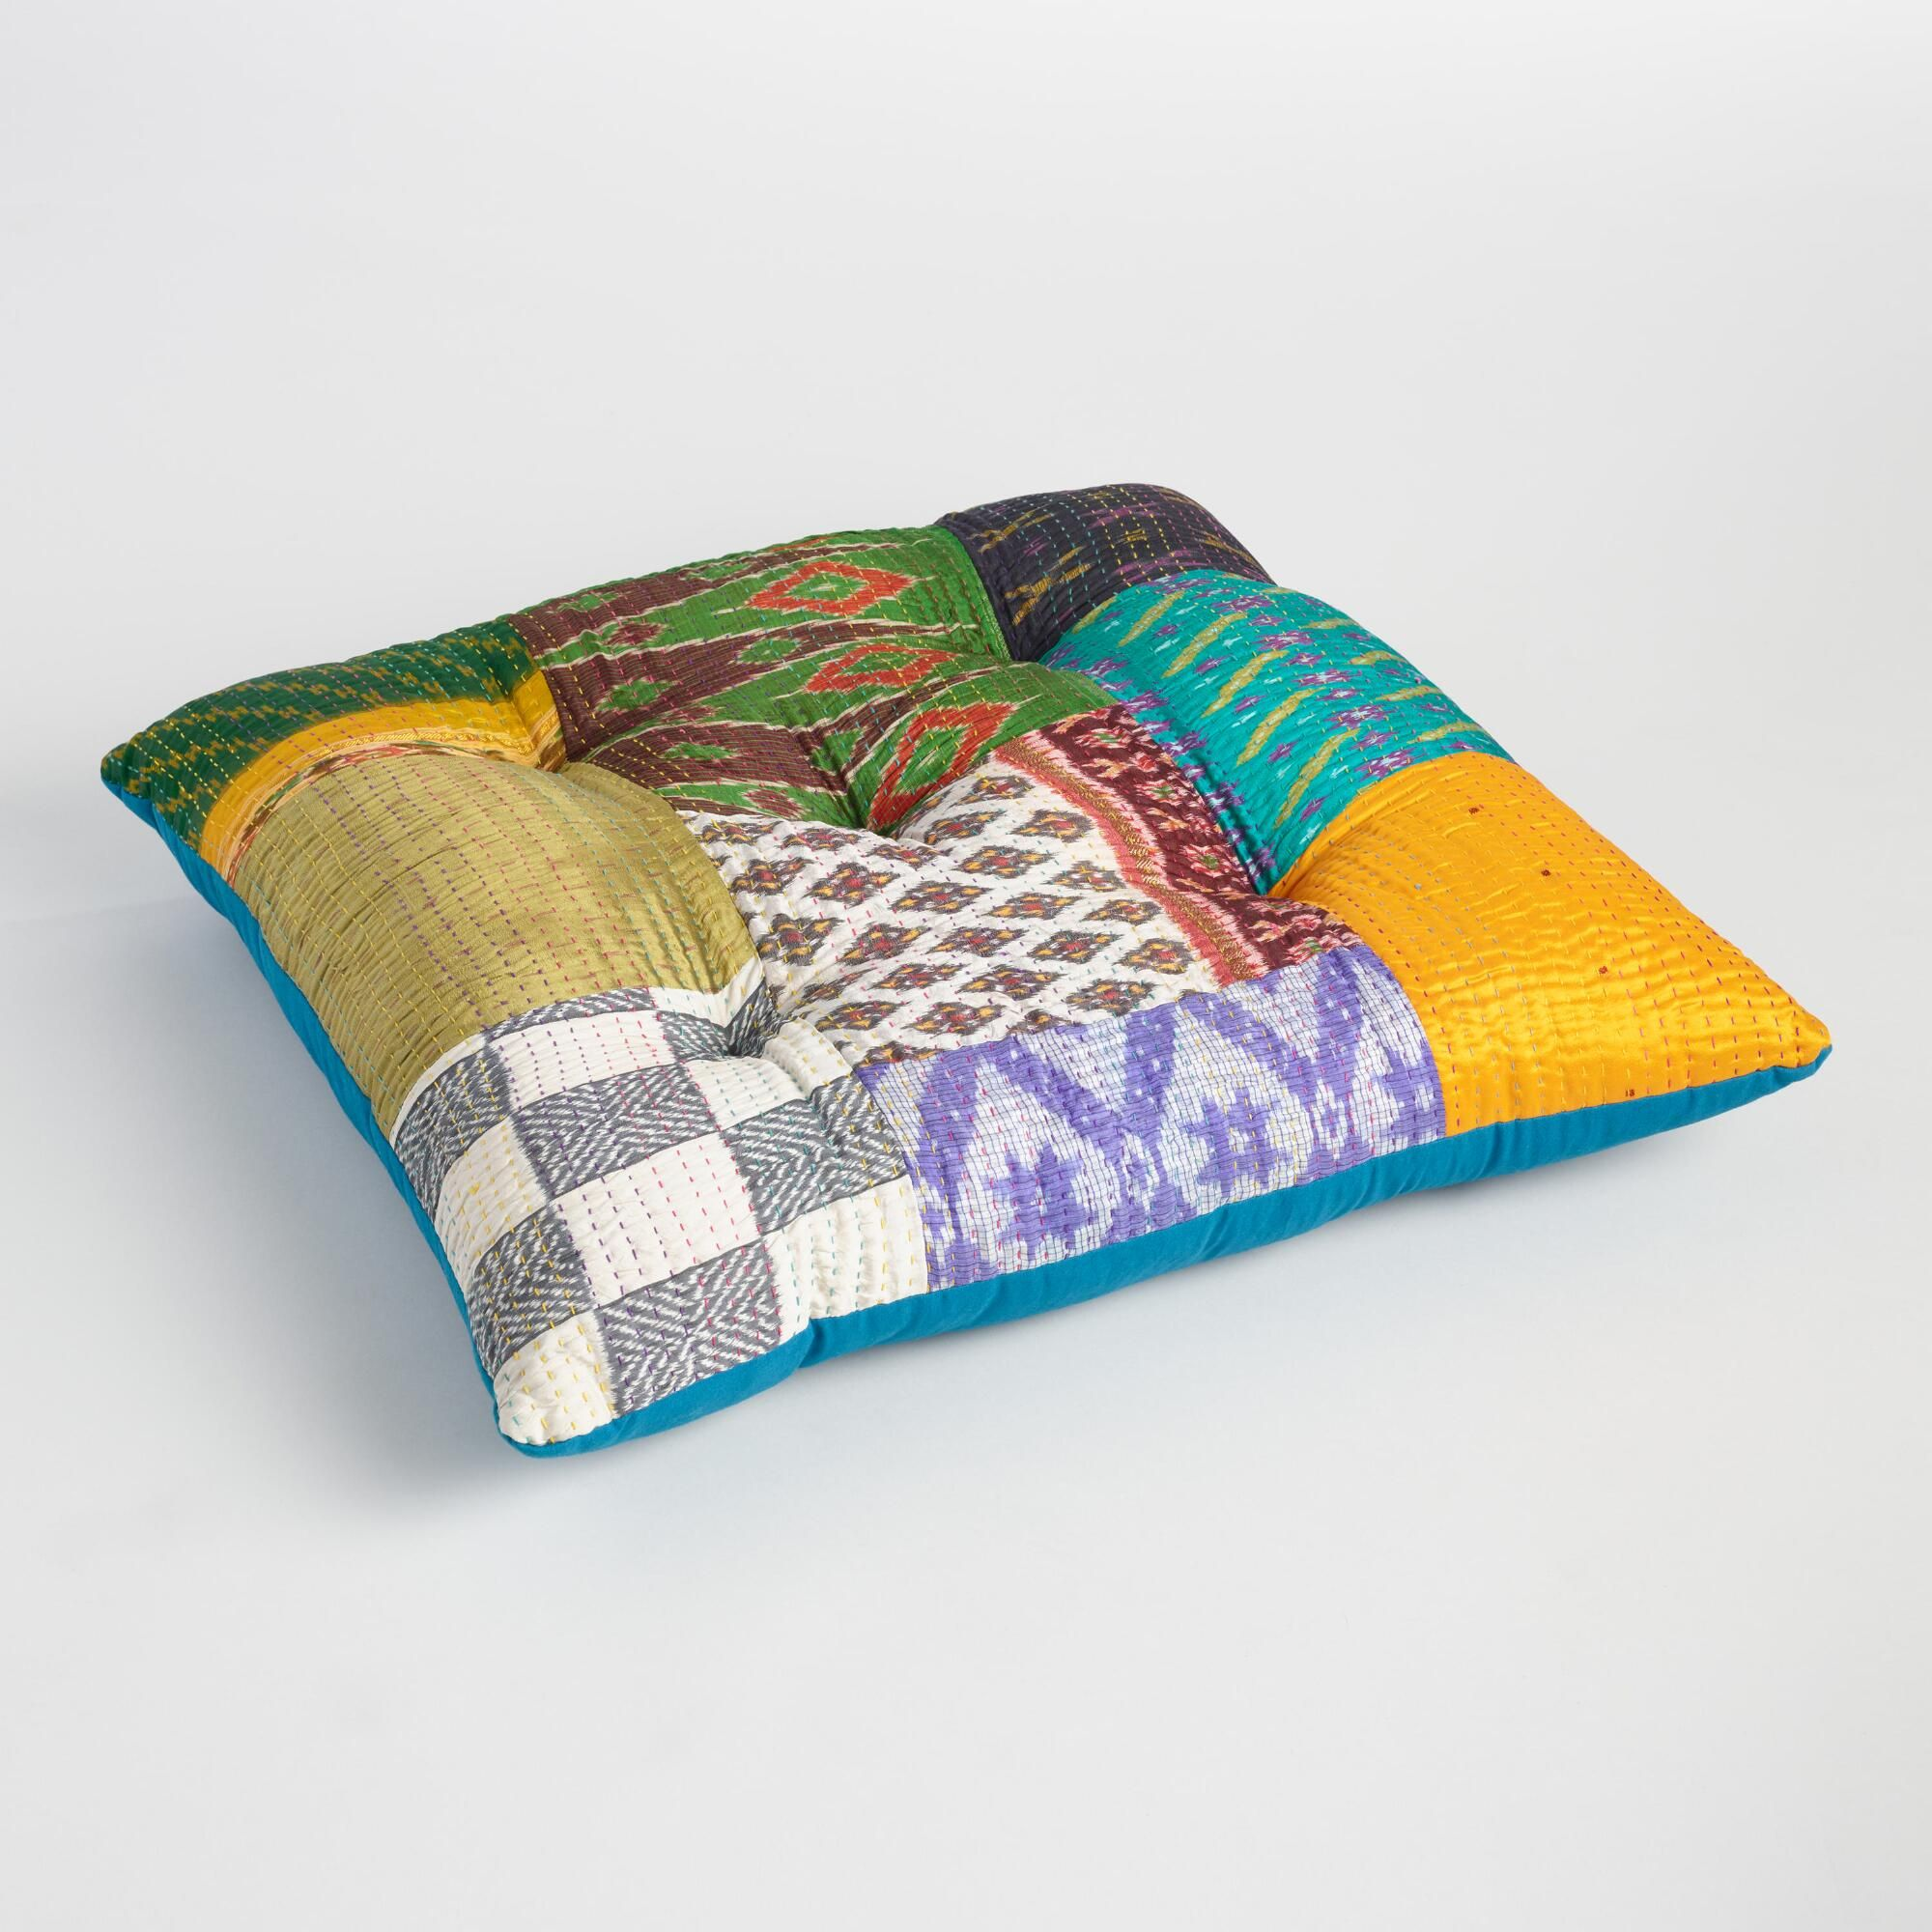 Crafted In India Of Recycled Silk Sari Remnants With A Patchwork Style Created Using Traditional Kantha Stich Embroidery Floor Pillows Floor Cushions Pillows